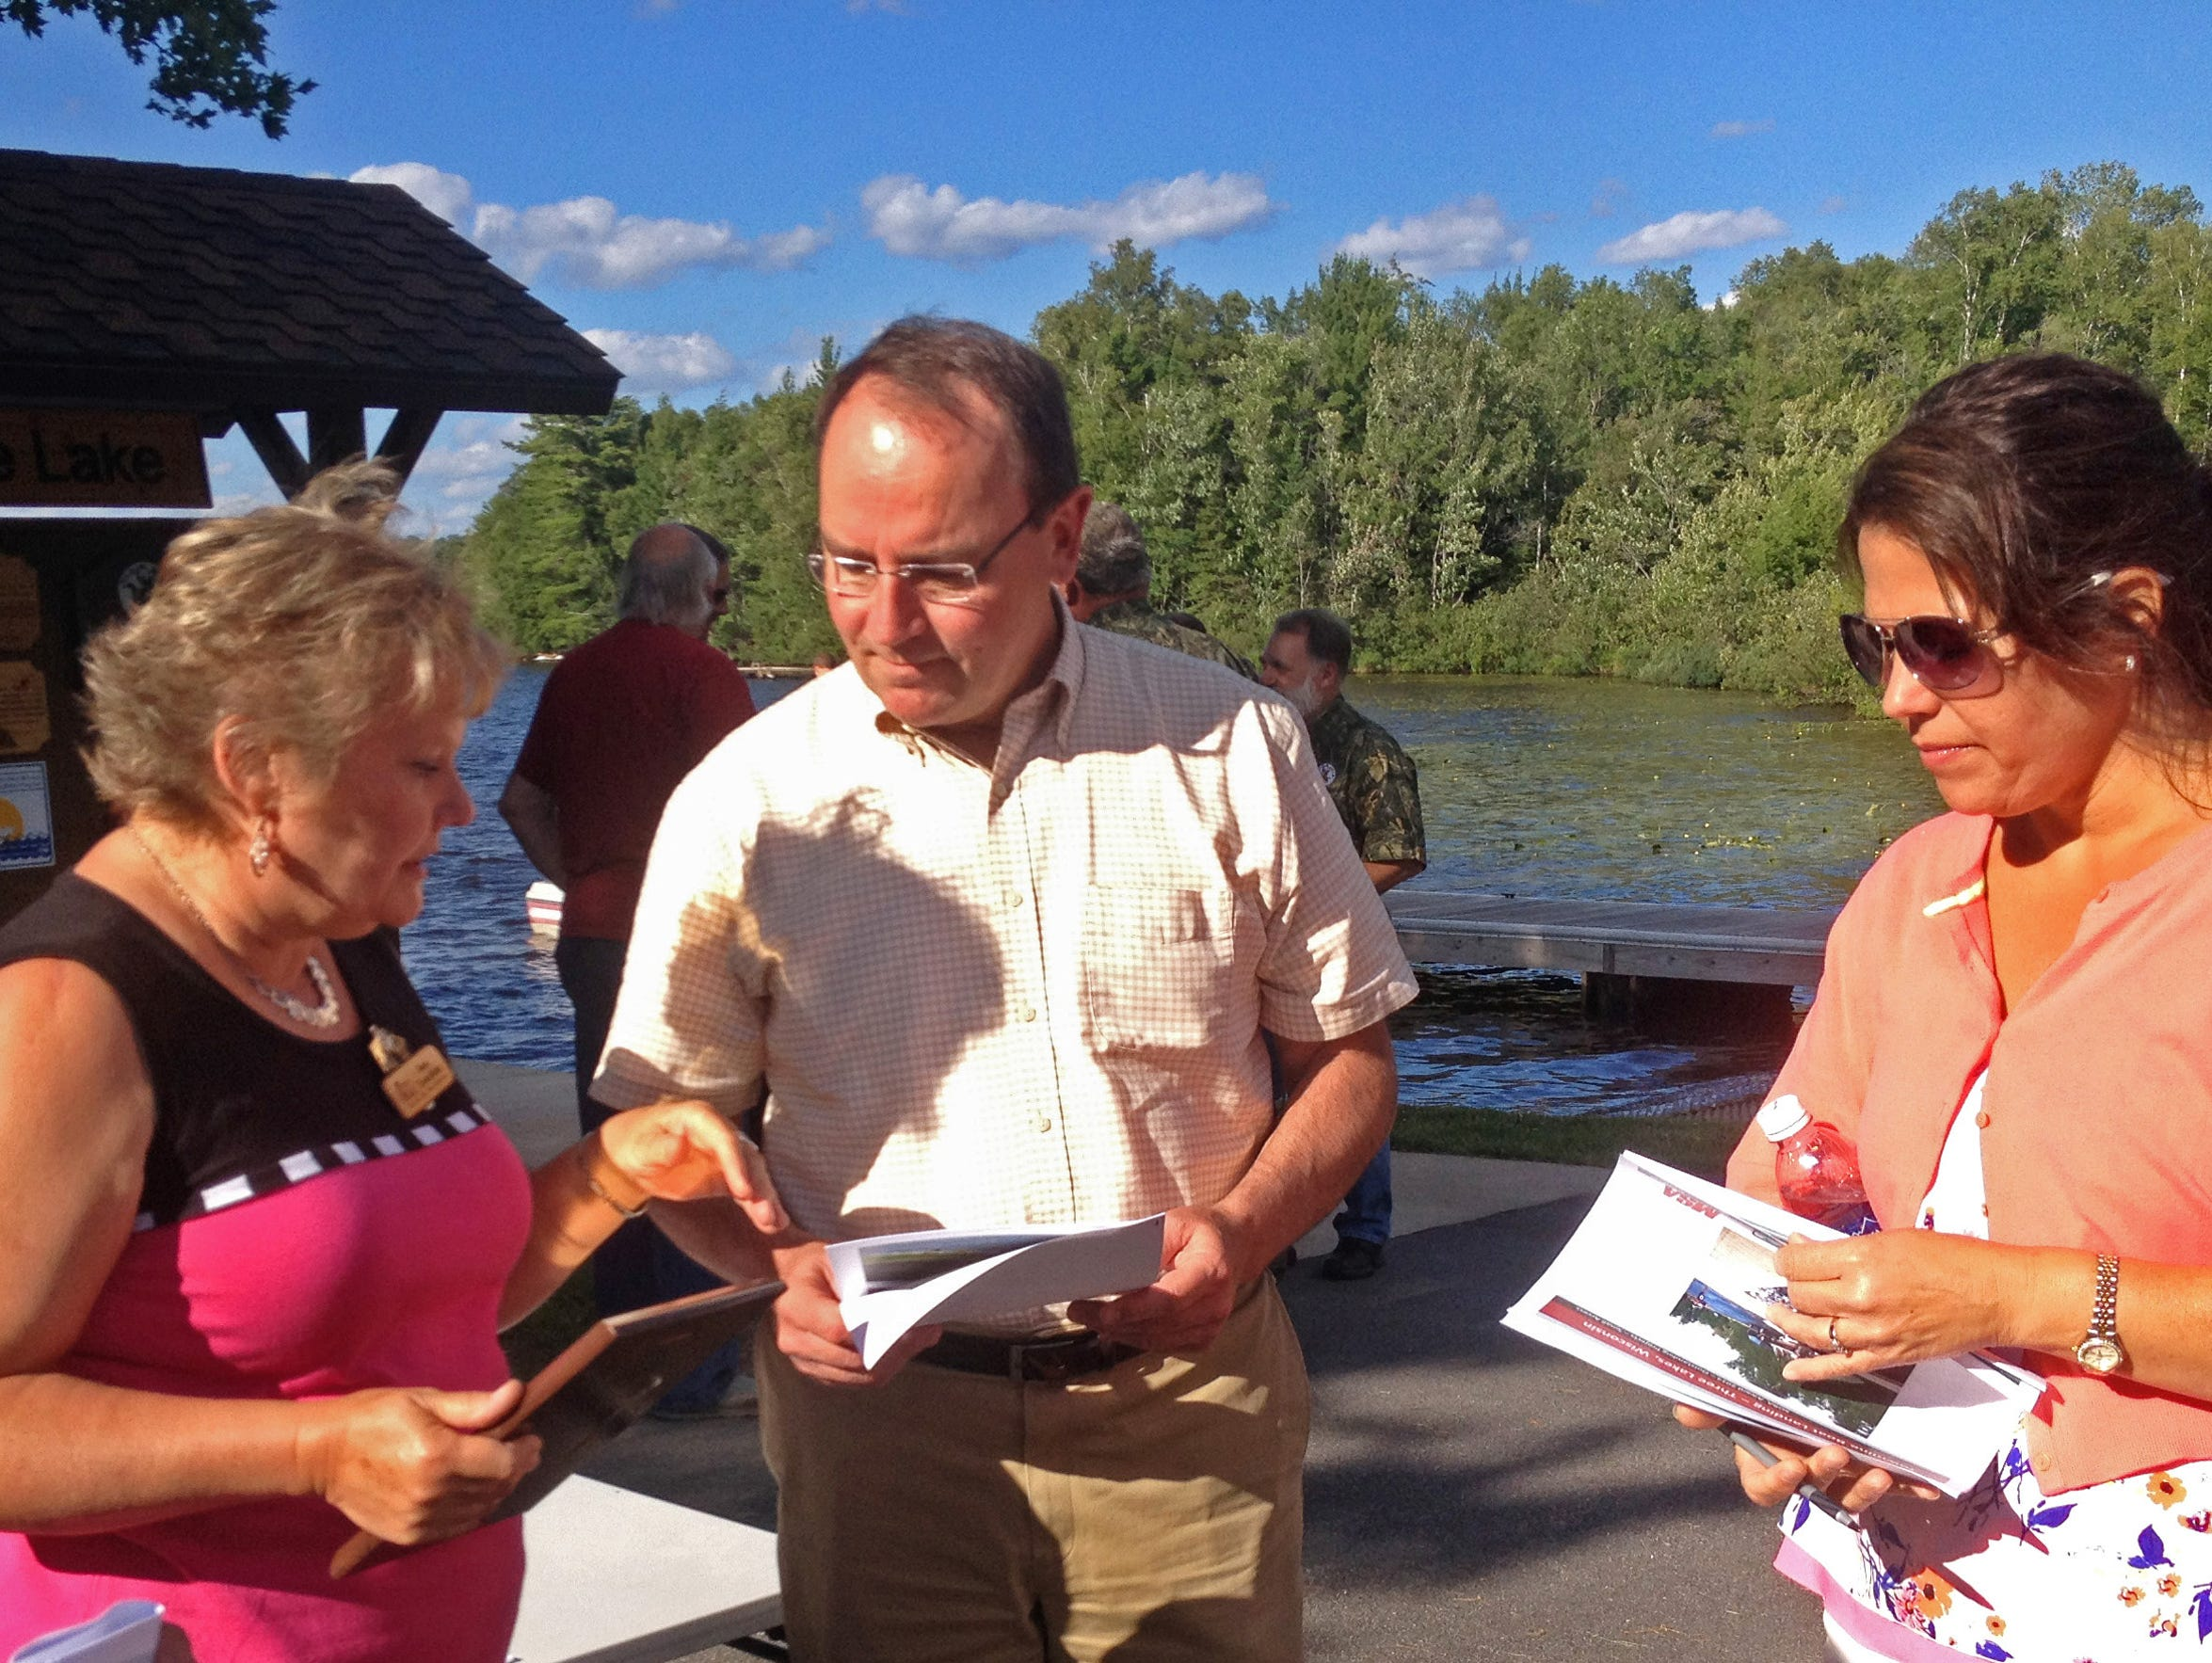 Sen. Tom Tiffany (R-Hazelhurst) at Townline Lake in